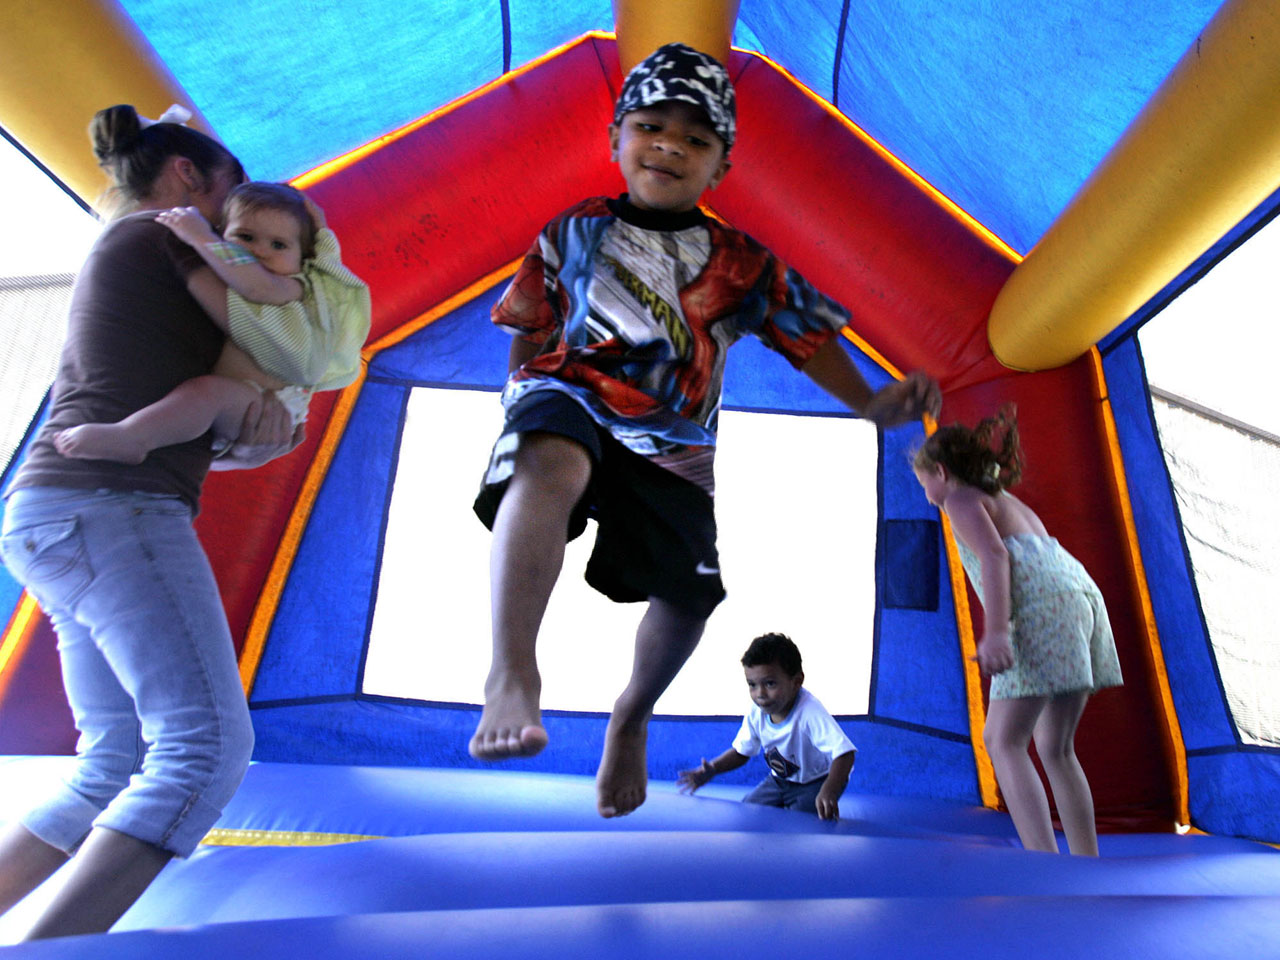 Bounce Houses Injure A Us Child Every 46 Minutes Study Finds